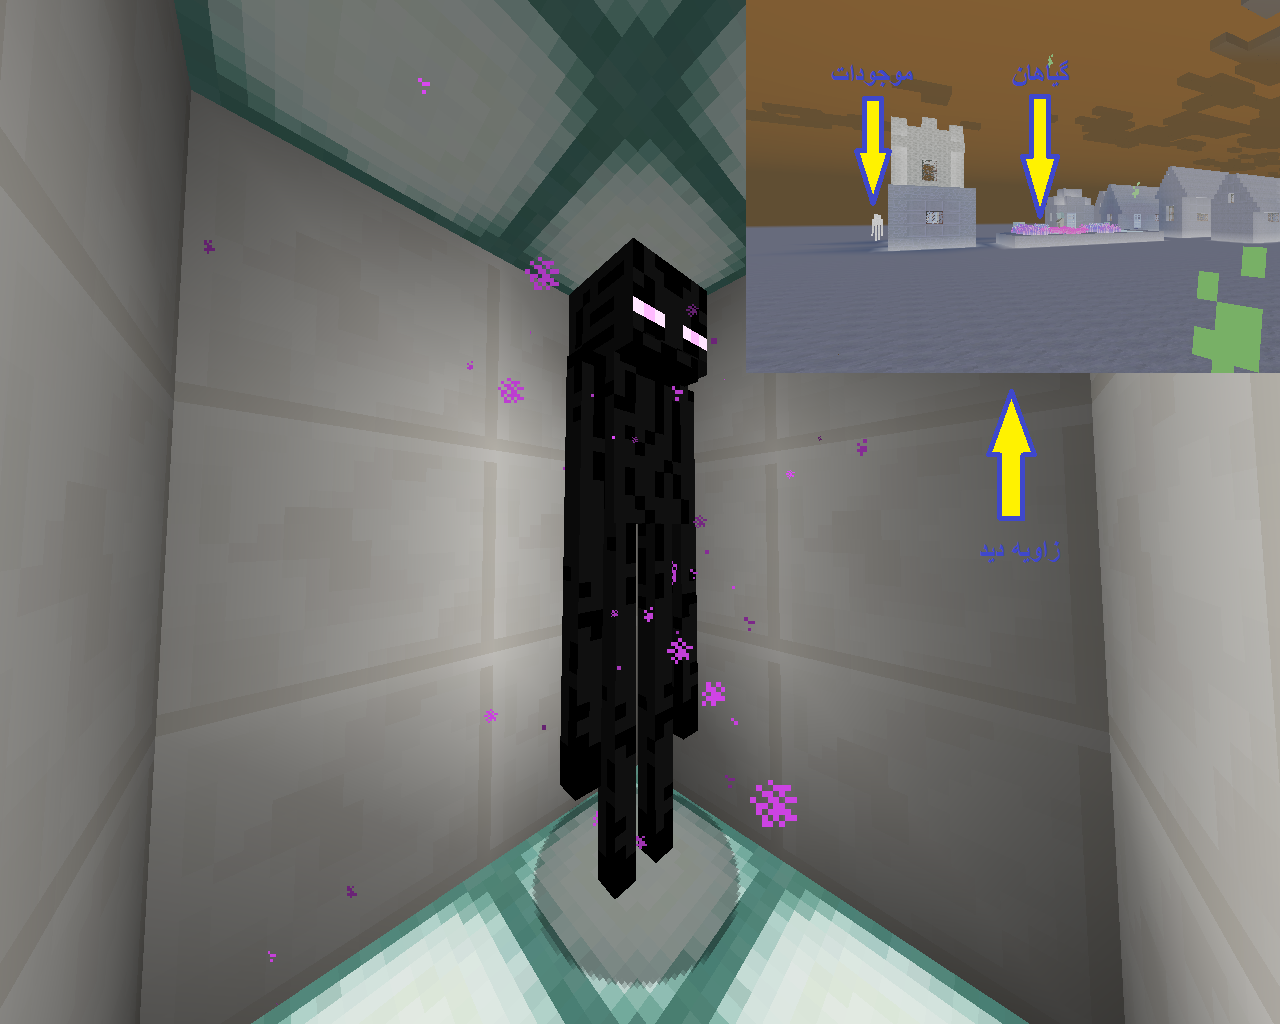 EnderMan + View